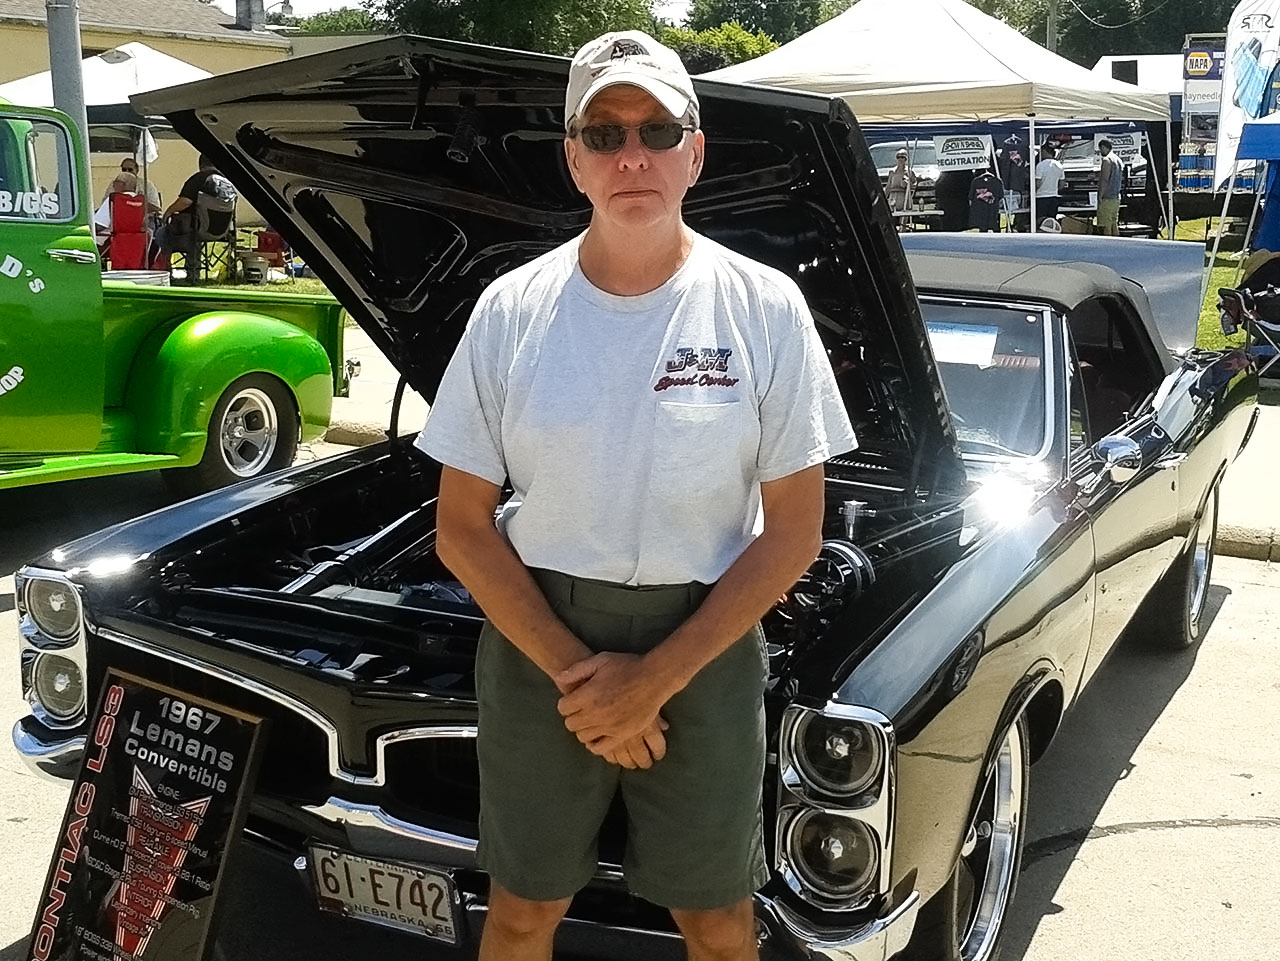 Barry Snodgrass' 1967 Pontiac Lemans Convertible